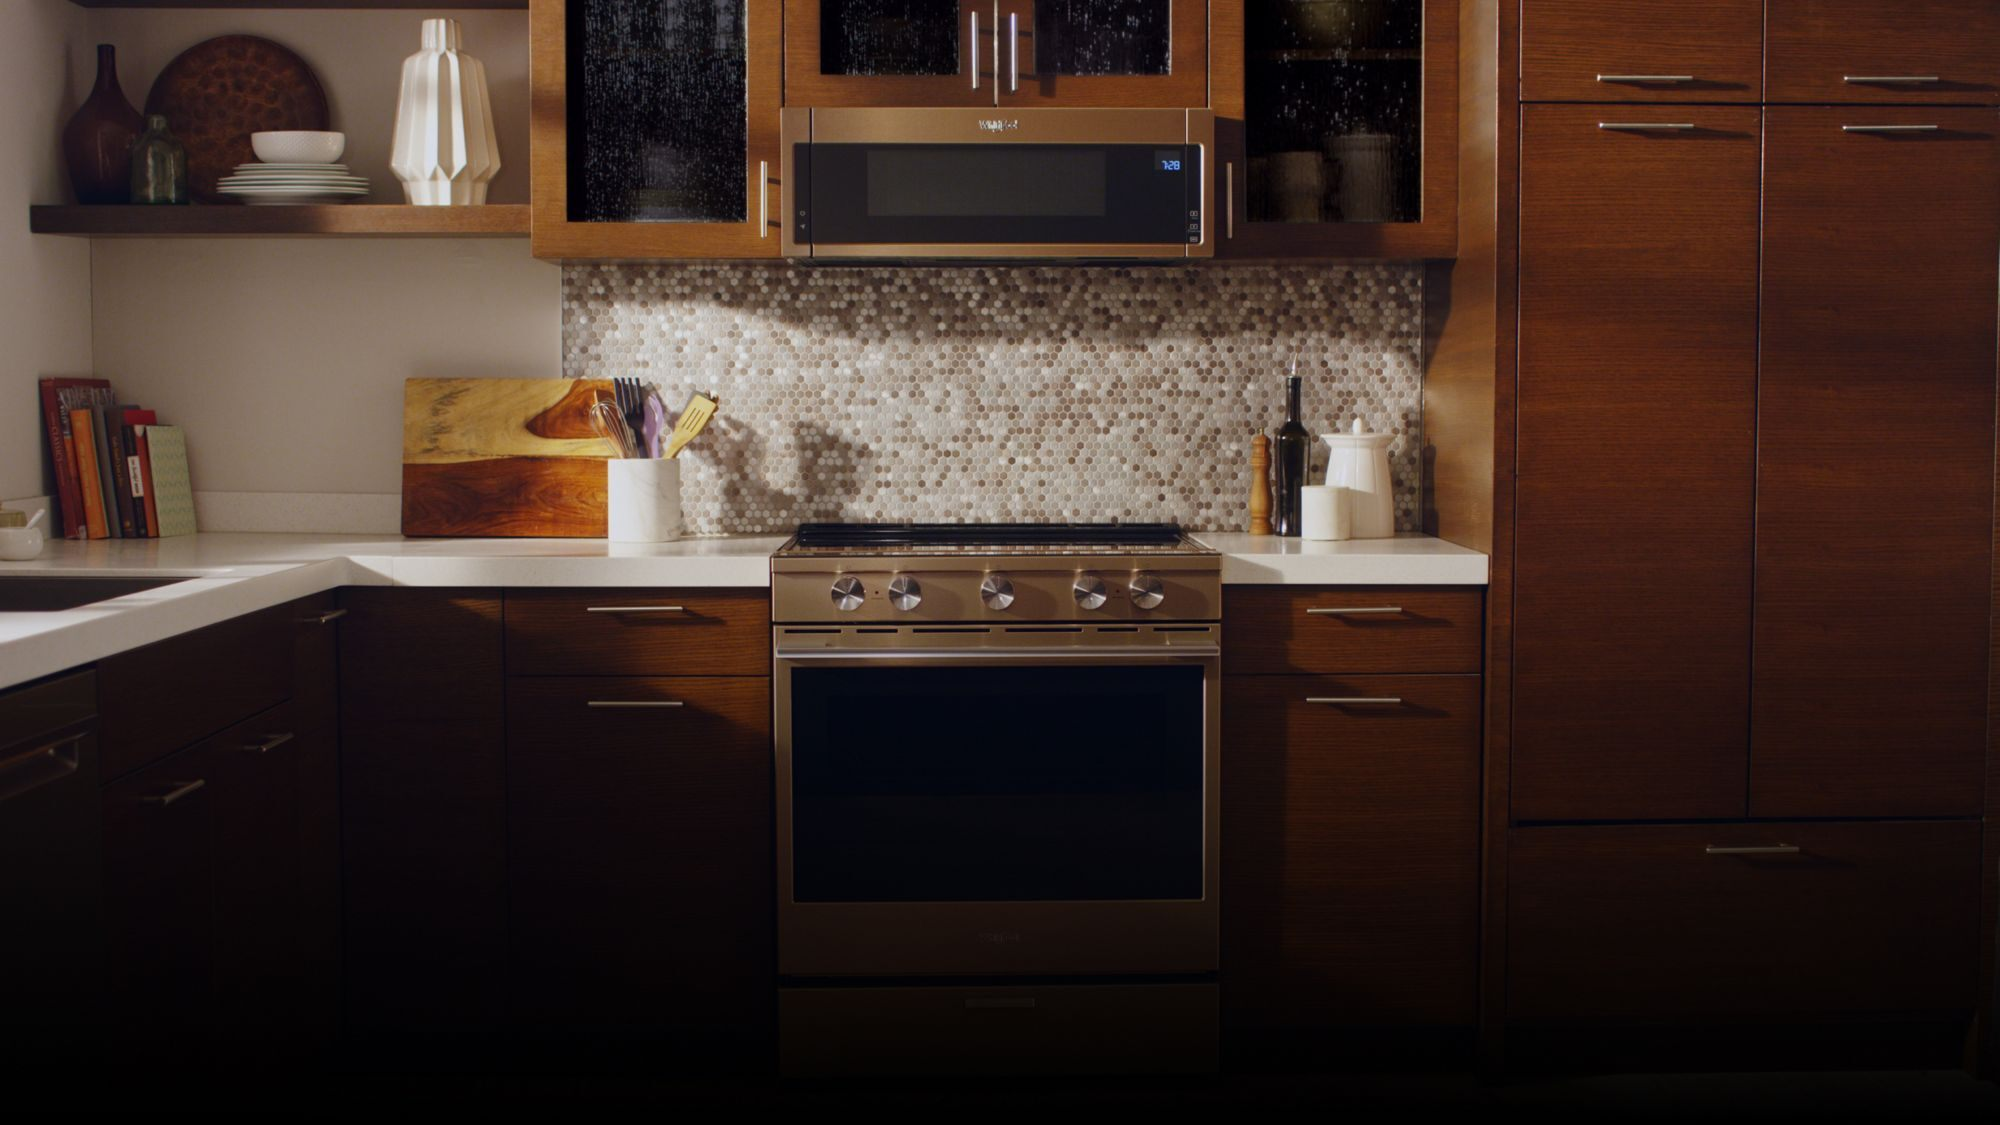 Whirlpool S E Saver Microwave Clears Your Counters